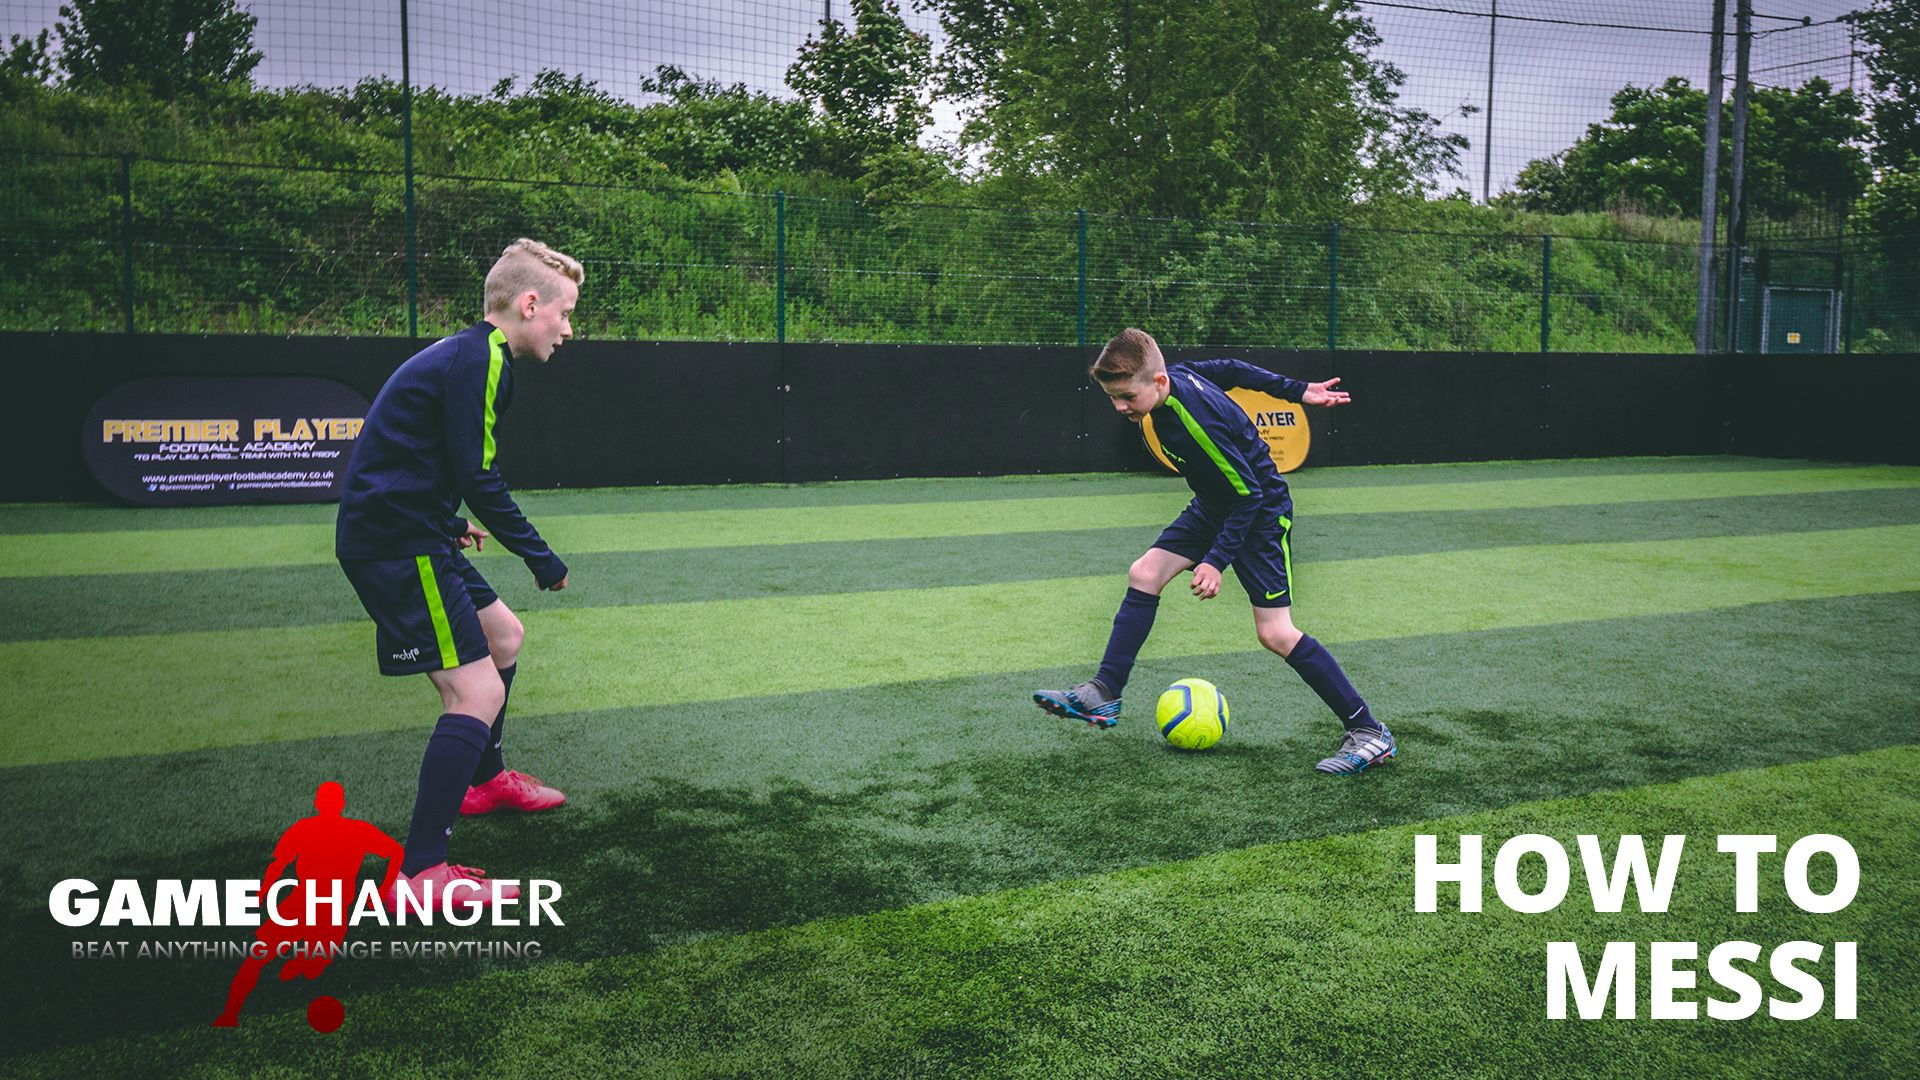 Premier Player Football Academy: Football Skills